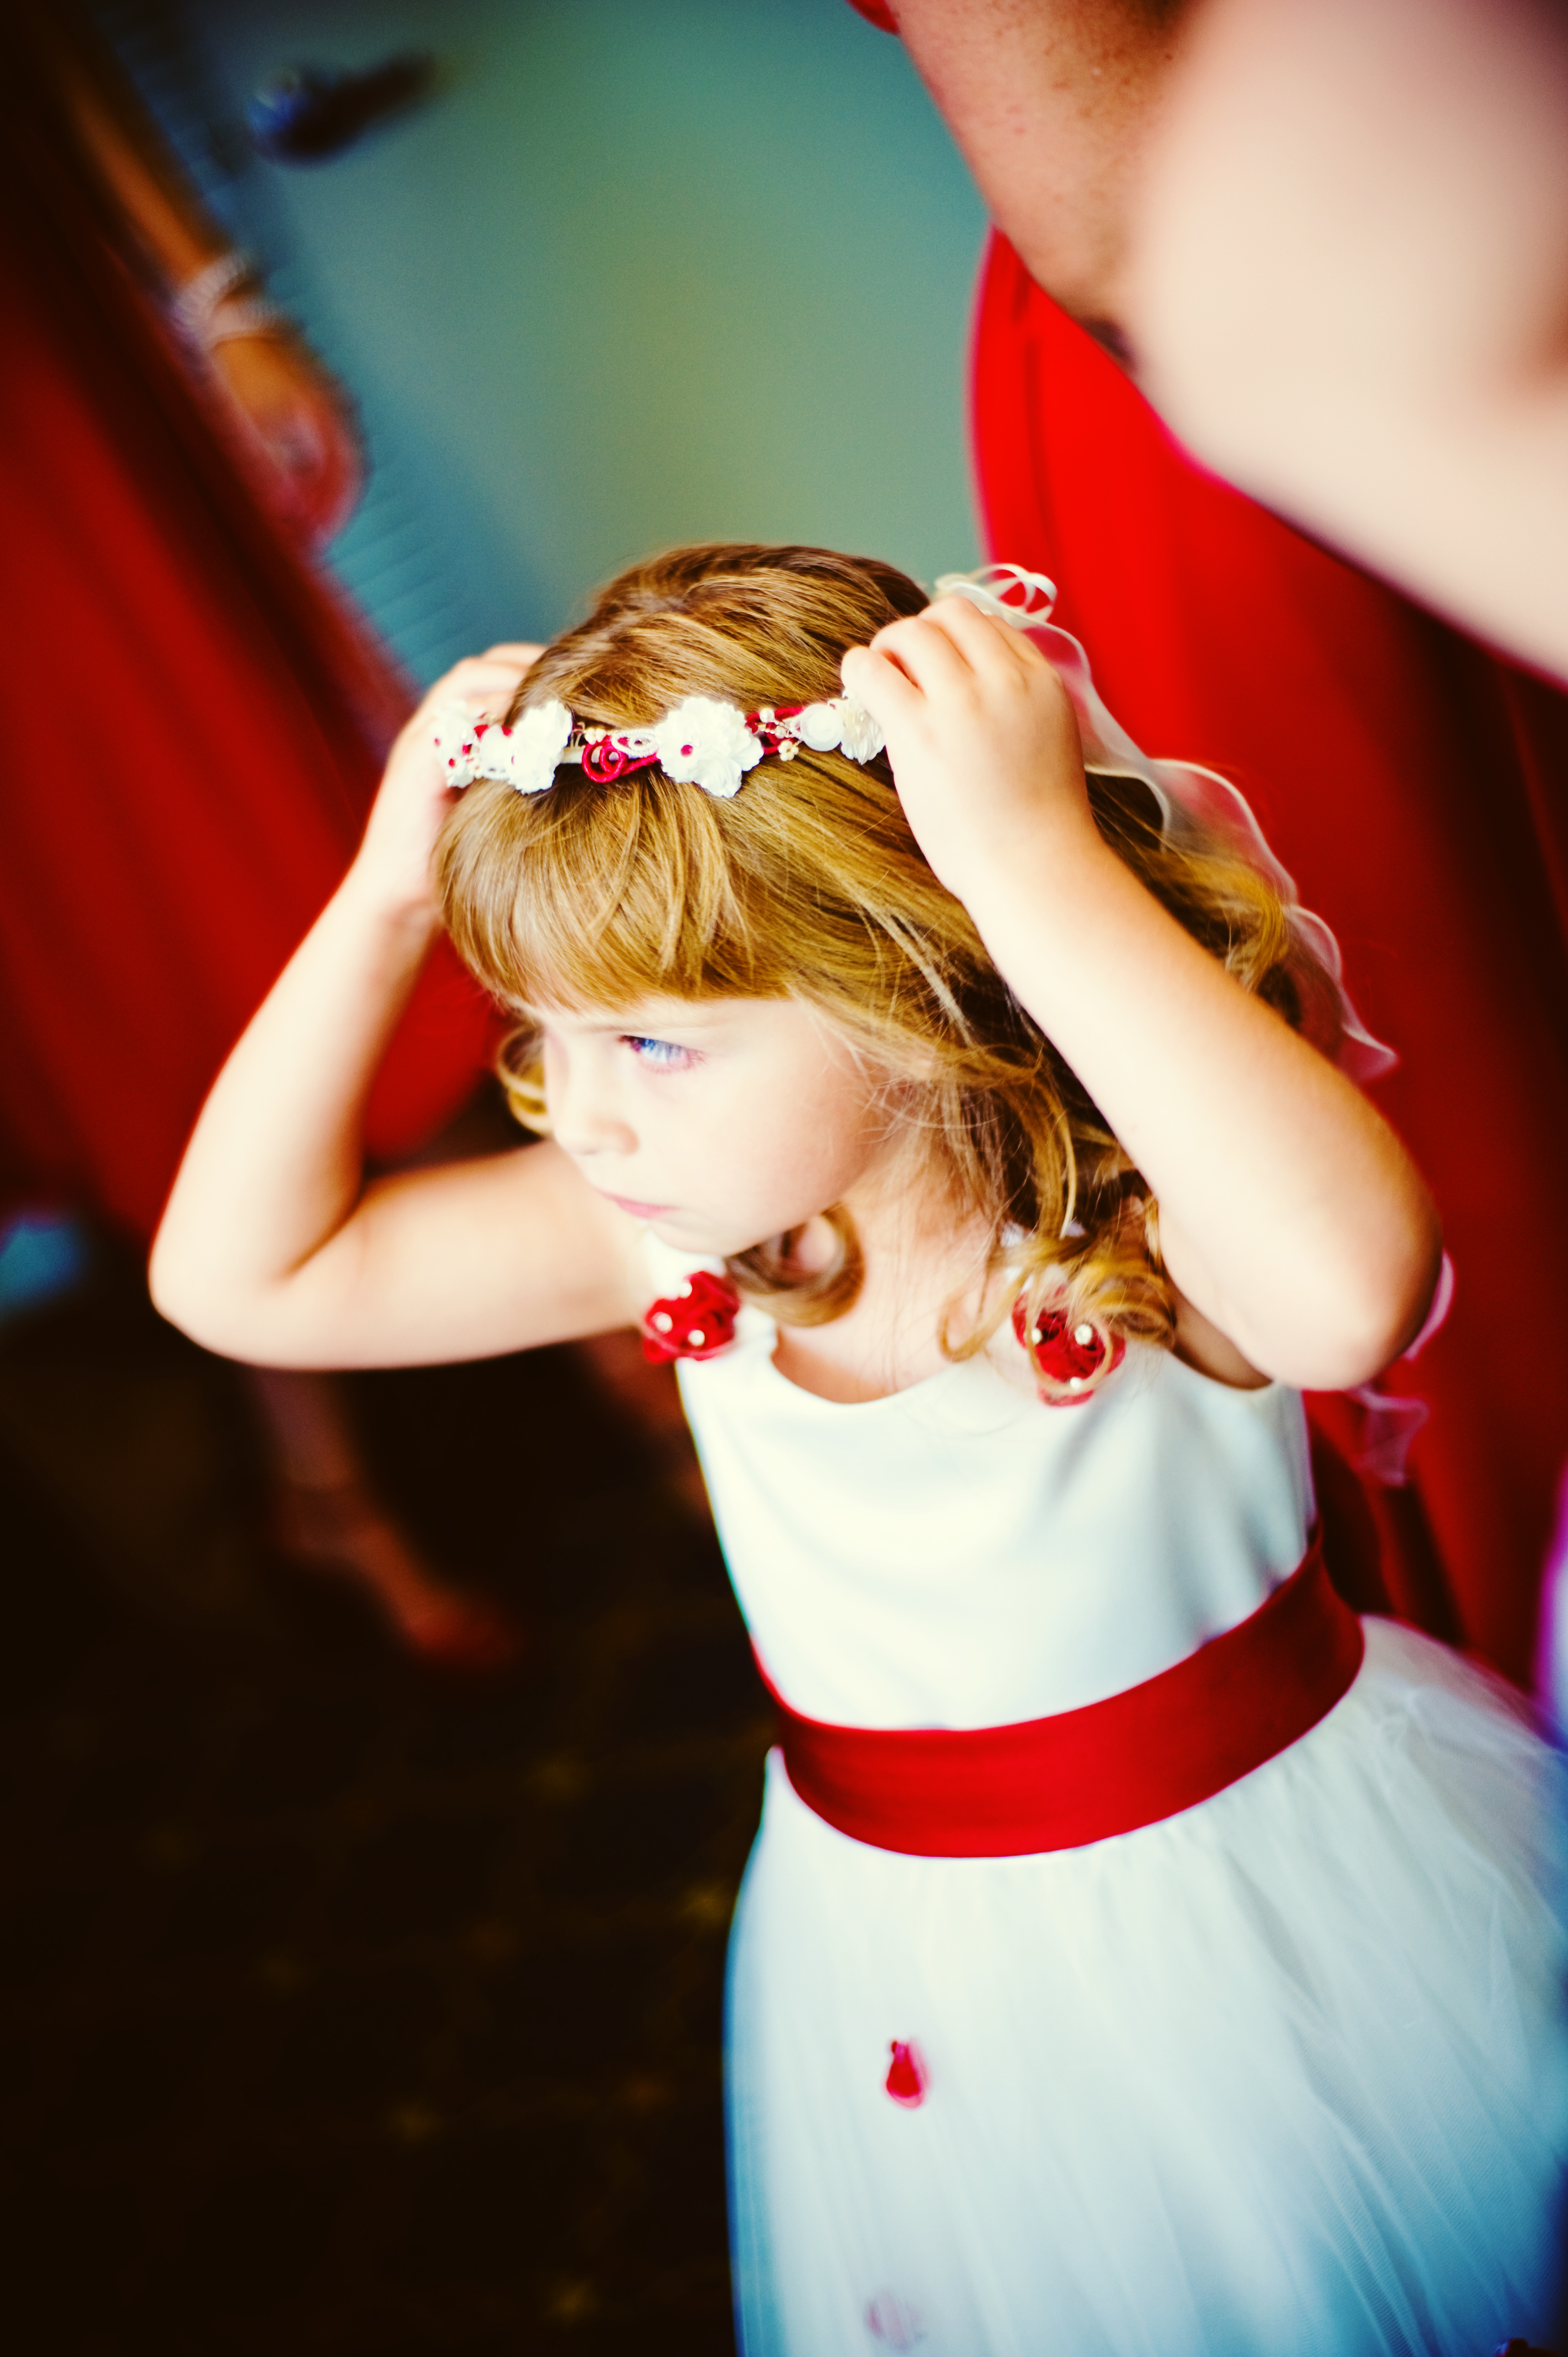 Beauty, Flowers & Decor, Wedding Dresses, Fashion, red, dress, Flower, Girl, Hair, Cute, Nessa k photography